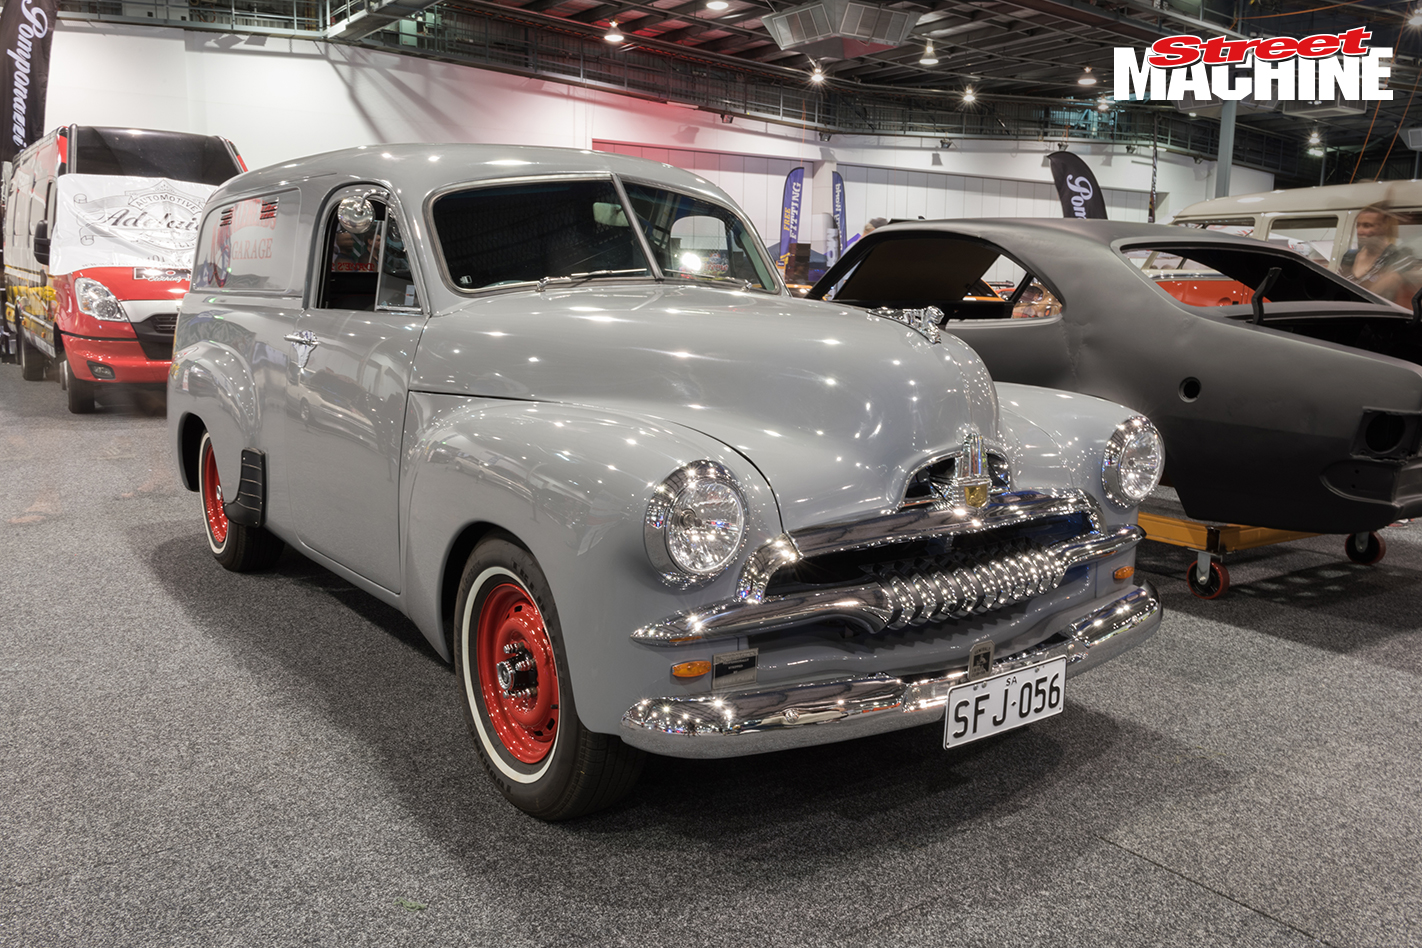 FJ Holden Panel Van